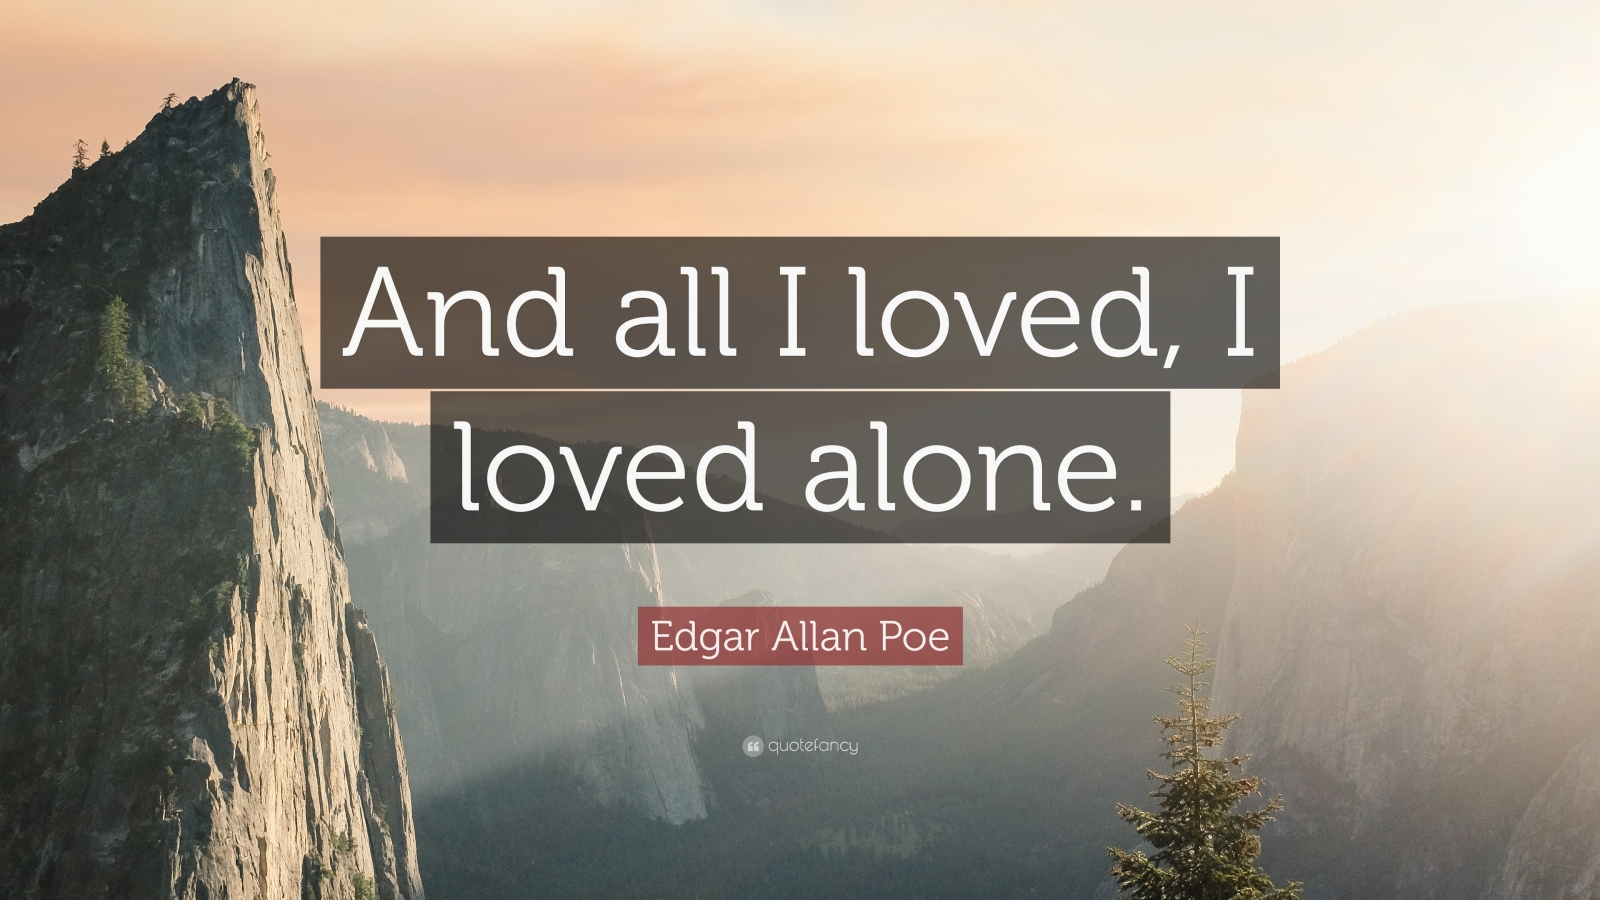 Edgar Allan Poe Love Quotes How Well Do You Know The Works Of Edgar Allan Poe  Playbuzz